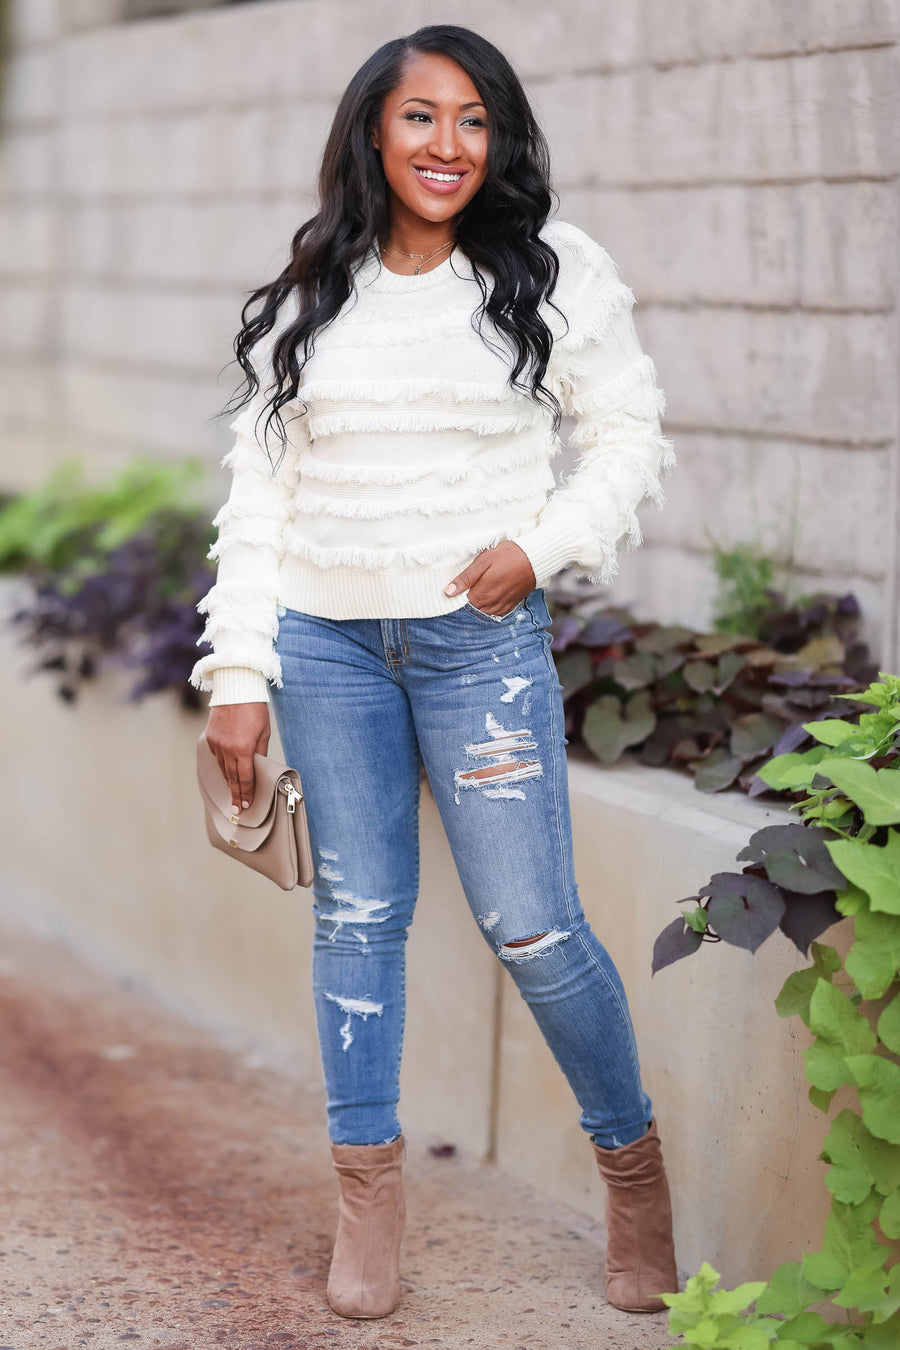 Fringe Benefits Sweater - Ivory womens trendy knit pullover sweater with fringe detail closet candy sitting